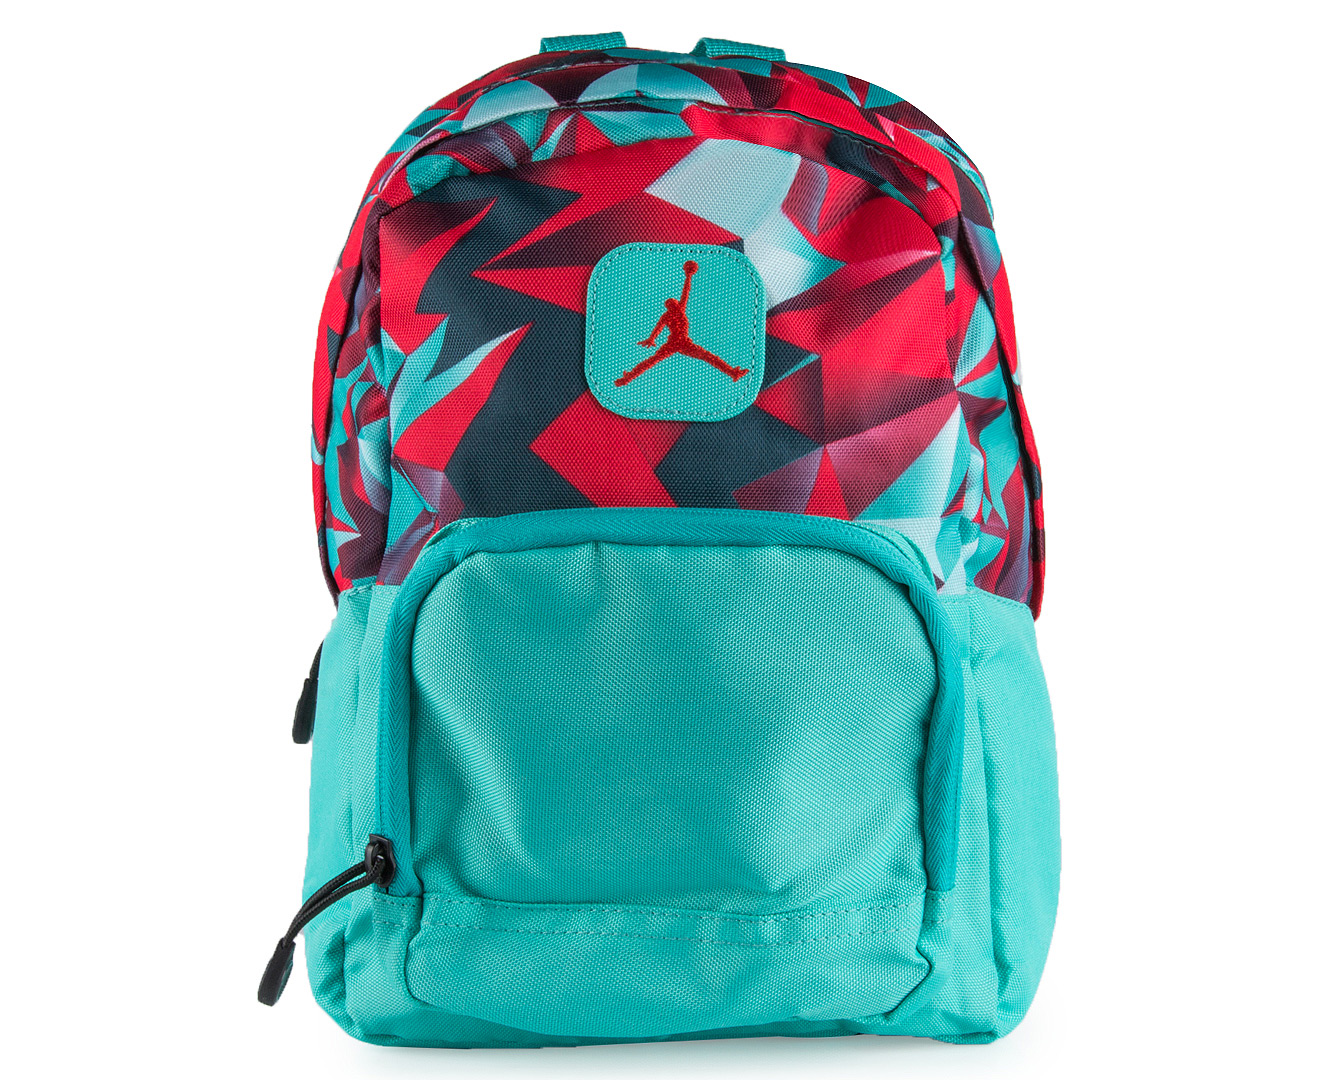 96ed1ba5b4d6 Nike Air Jordan Retro Mini Backpack - Teal